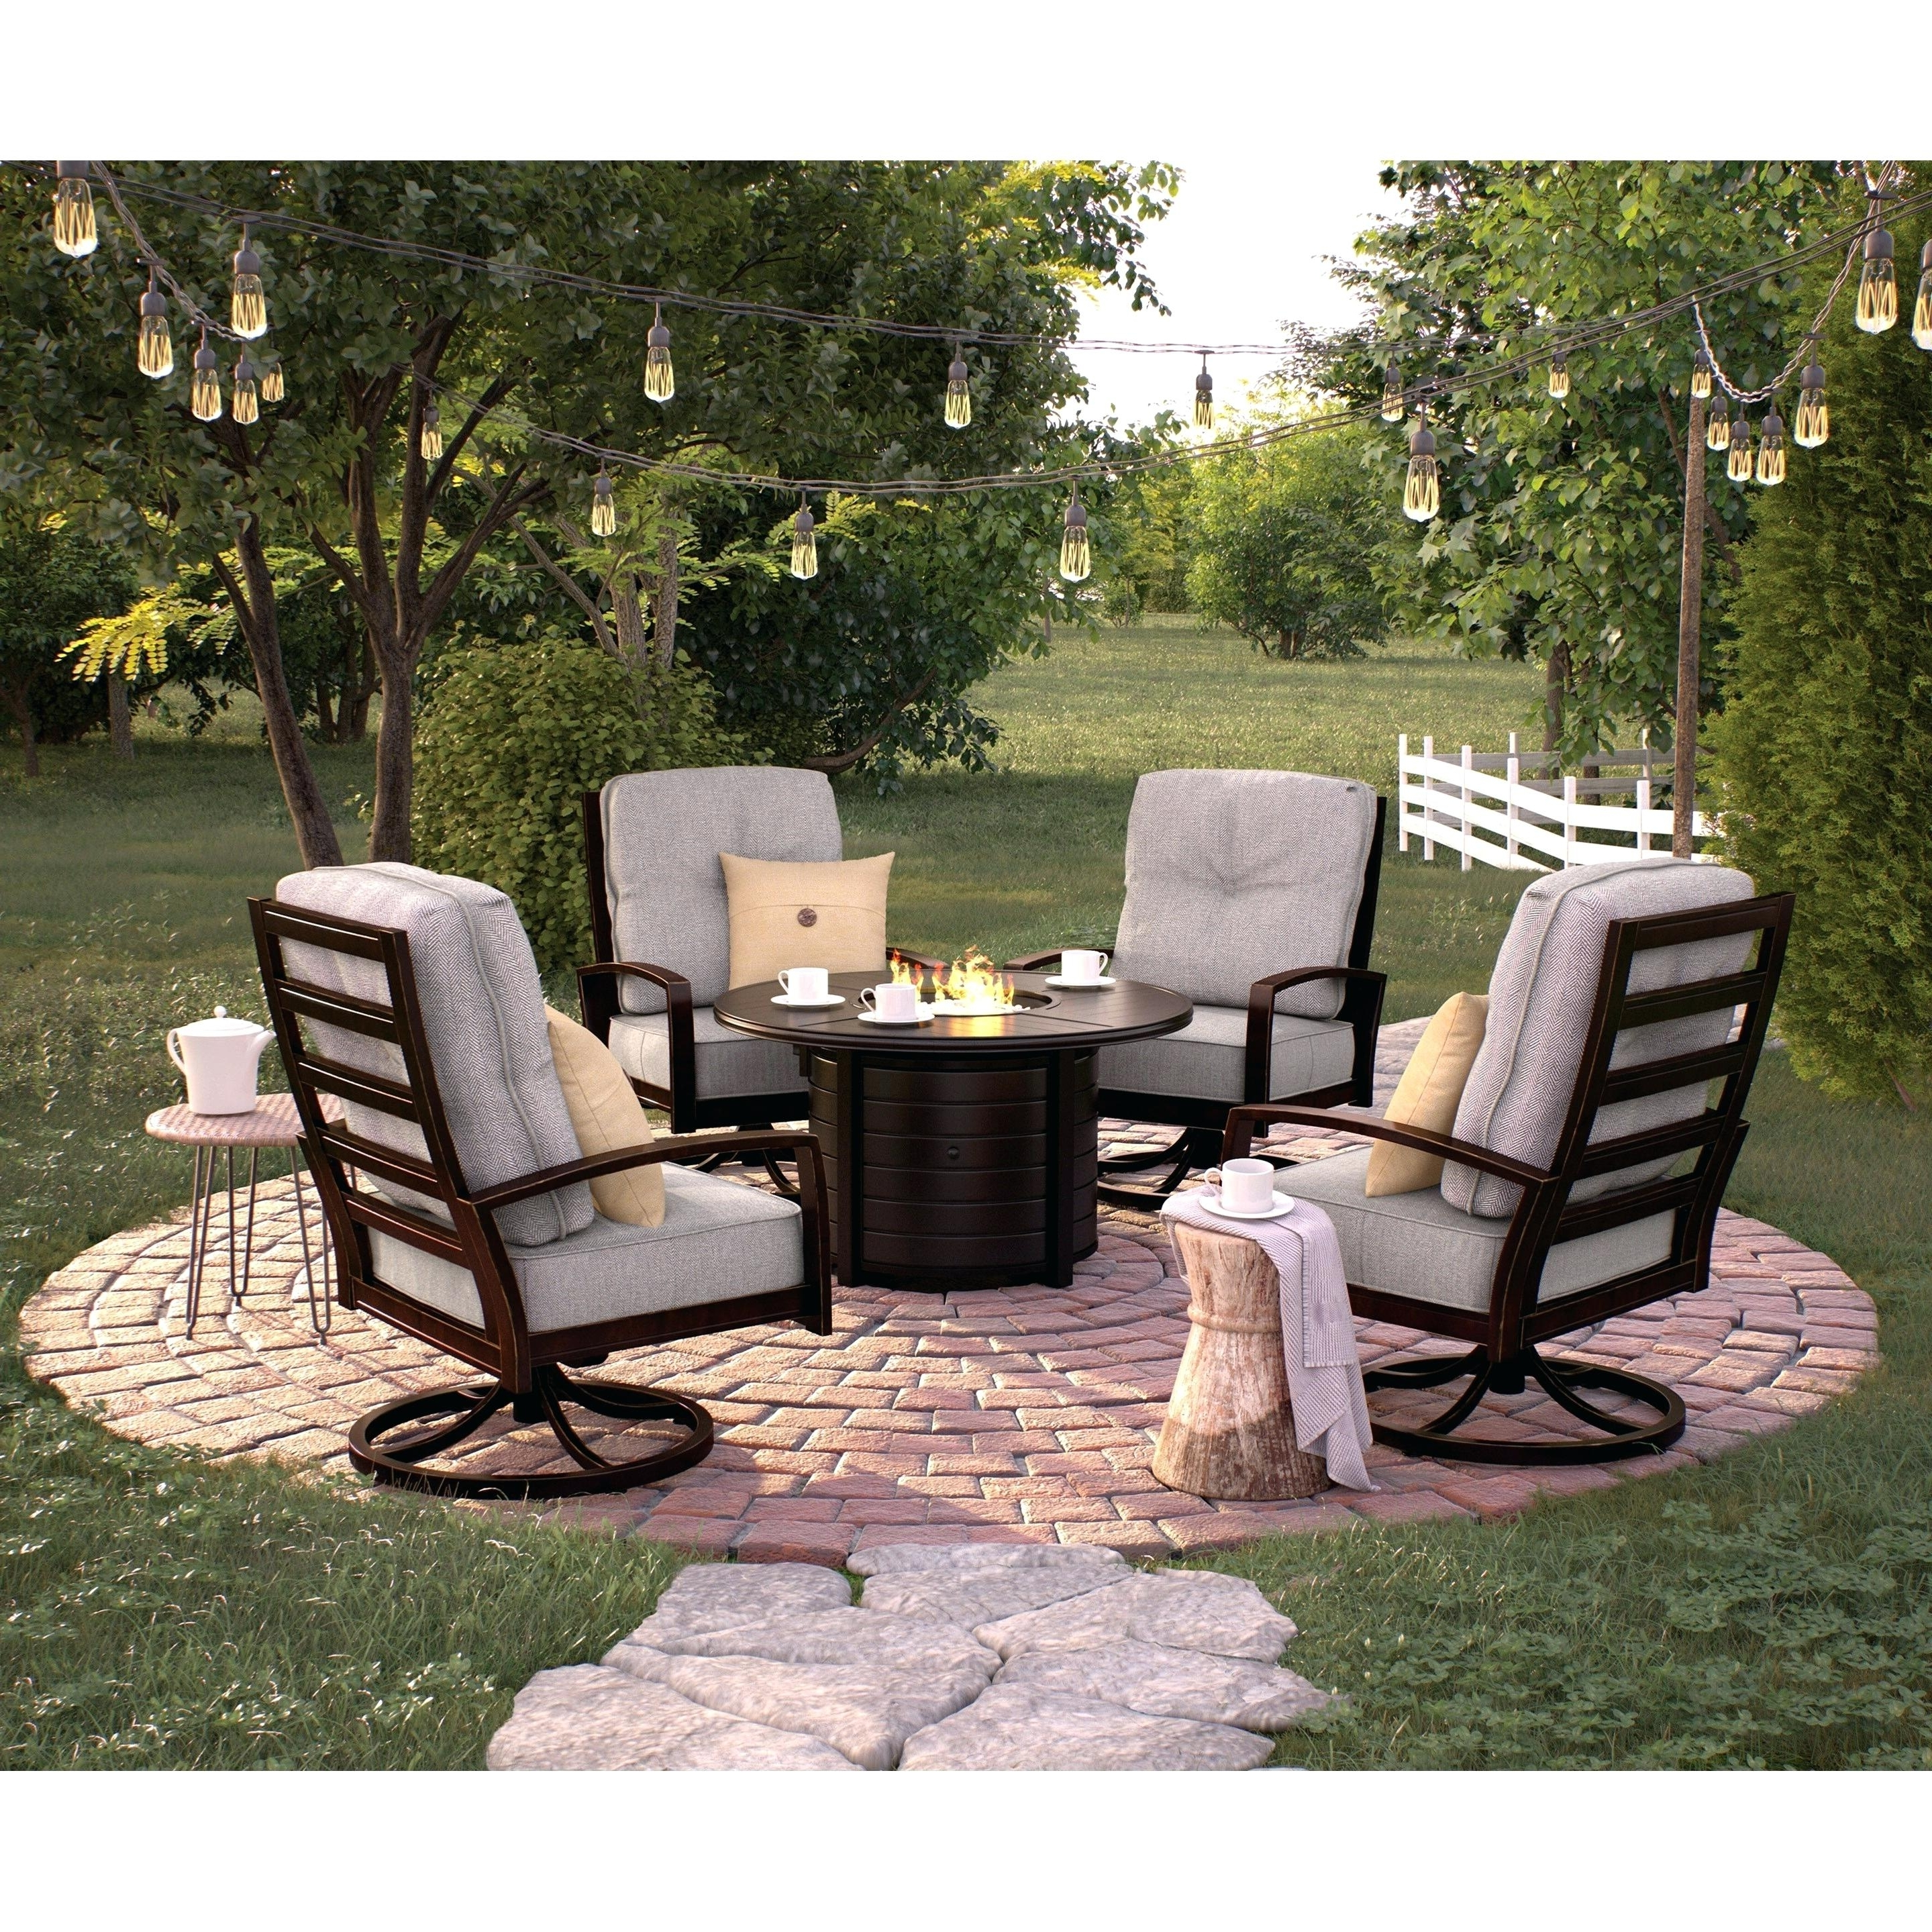 Widely Used Patio Conversation Sets At Target Pertaining To Target Patio Furniture Conversation Sets Wayfair Patio Furniture (View 3 of 20)